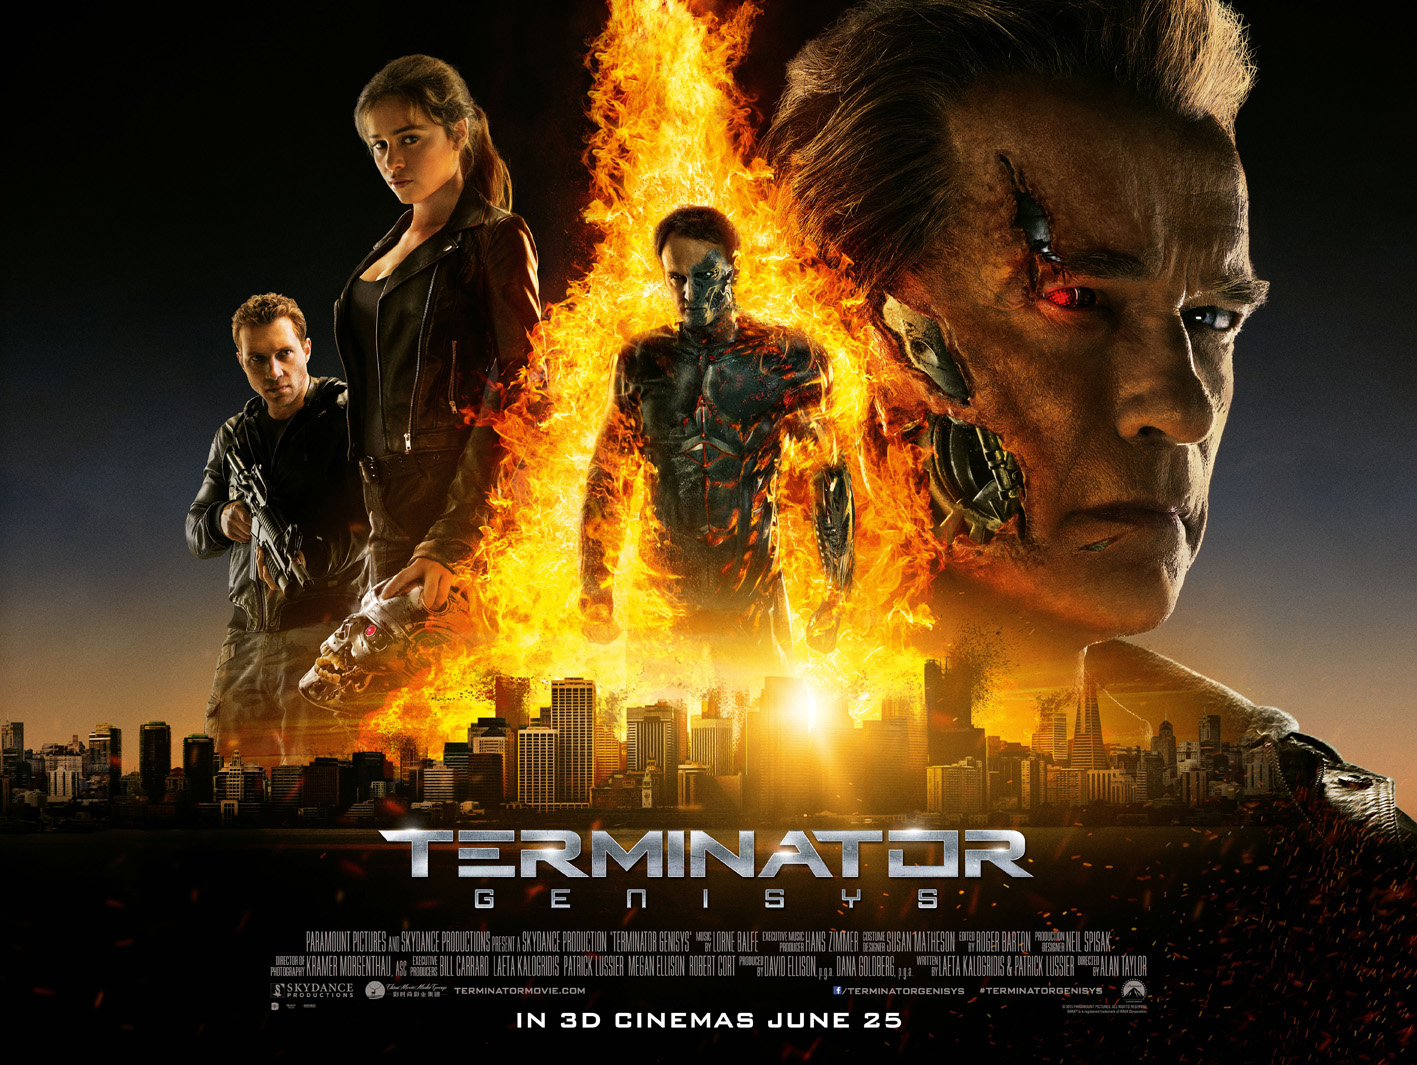 Inception Hindi Dubbed Hd: Terminator Genisys (2015) Hindi Dubbed